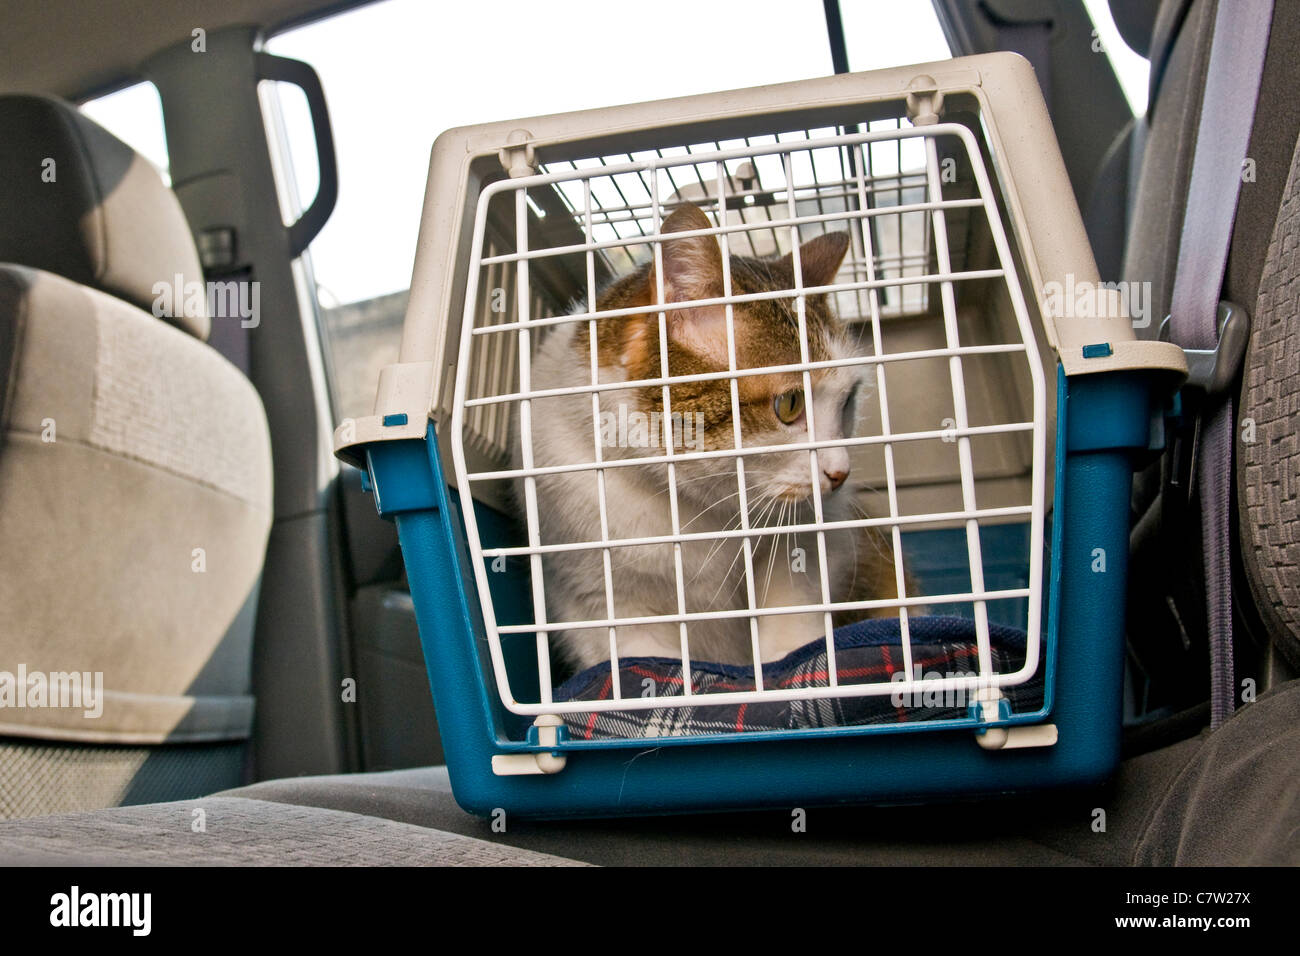 Cat in car inside carrying box - Stock Image